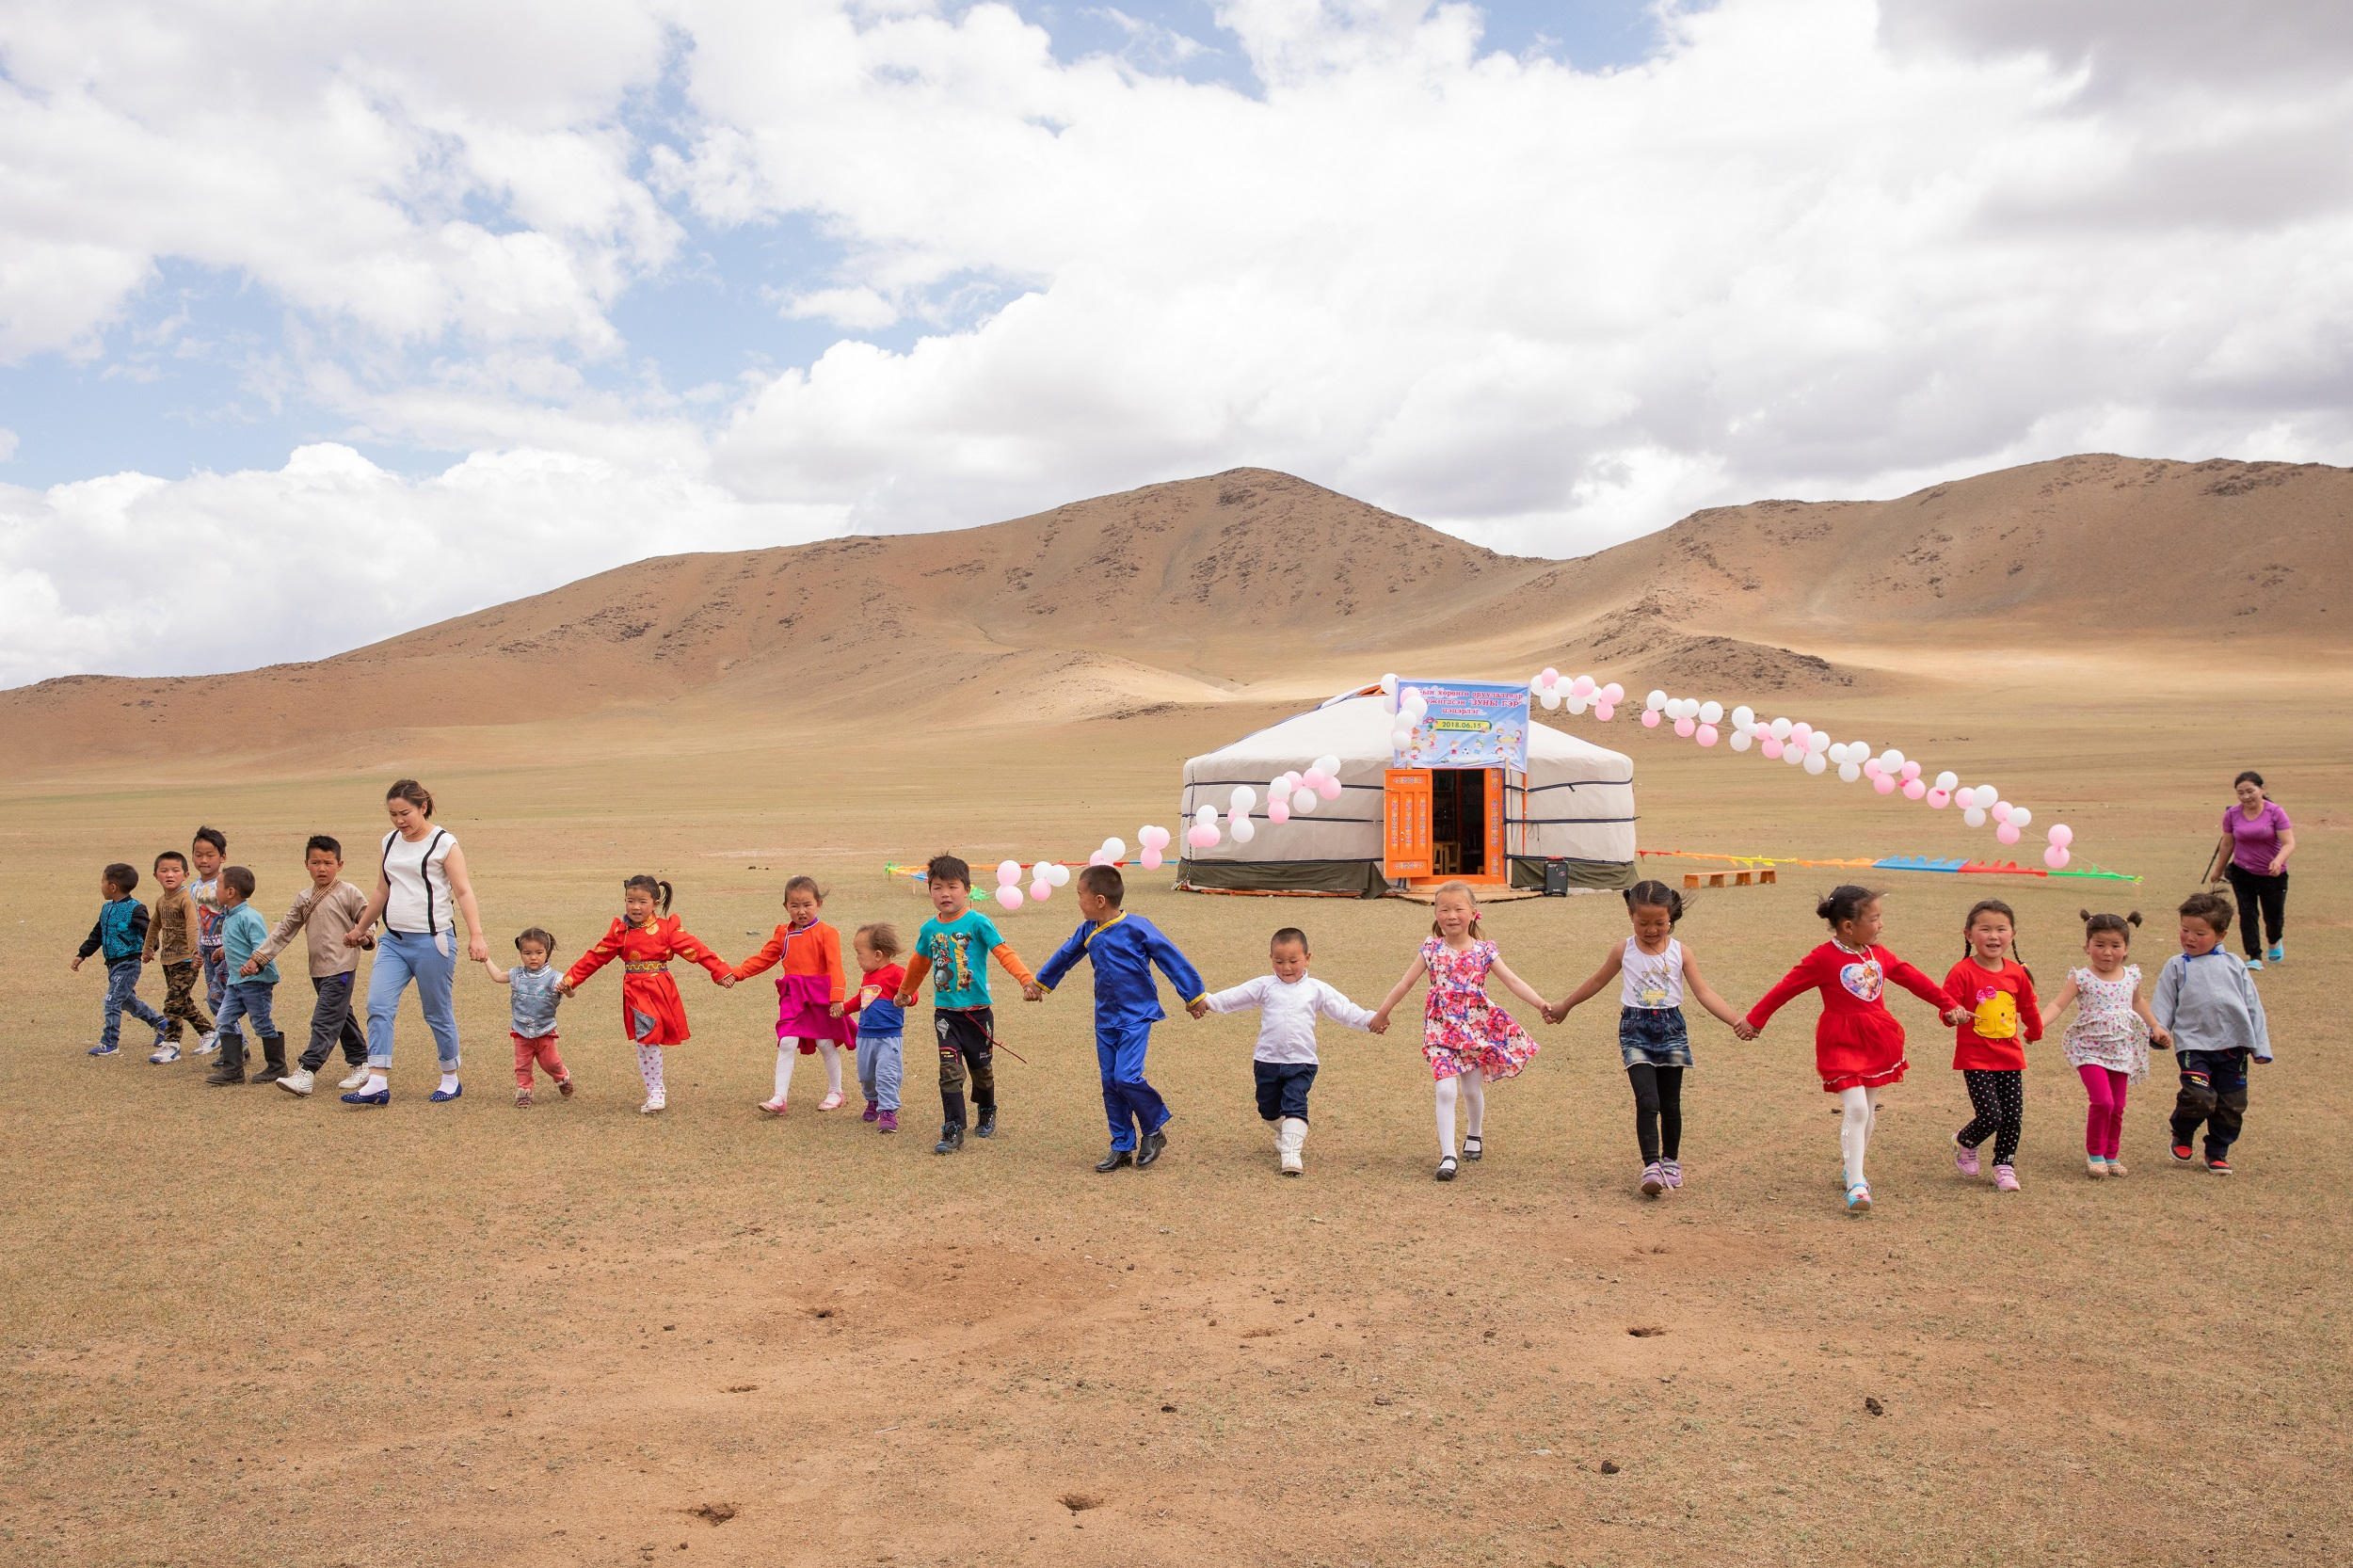 A group of children holding hands creating a human chain walking towards us.